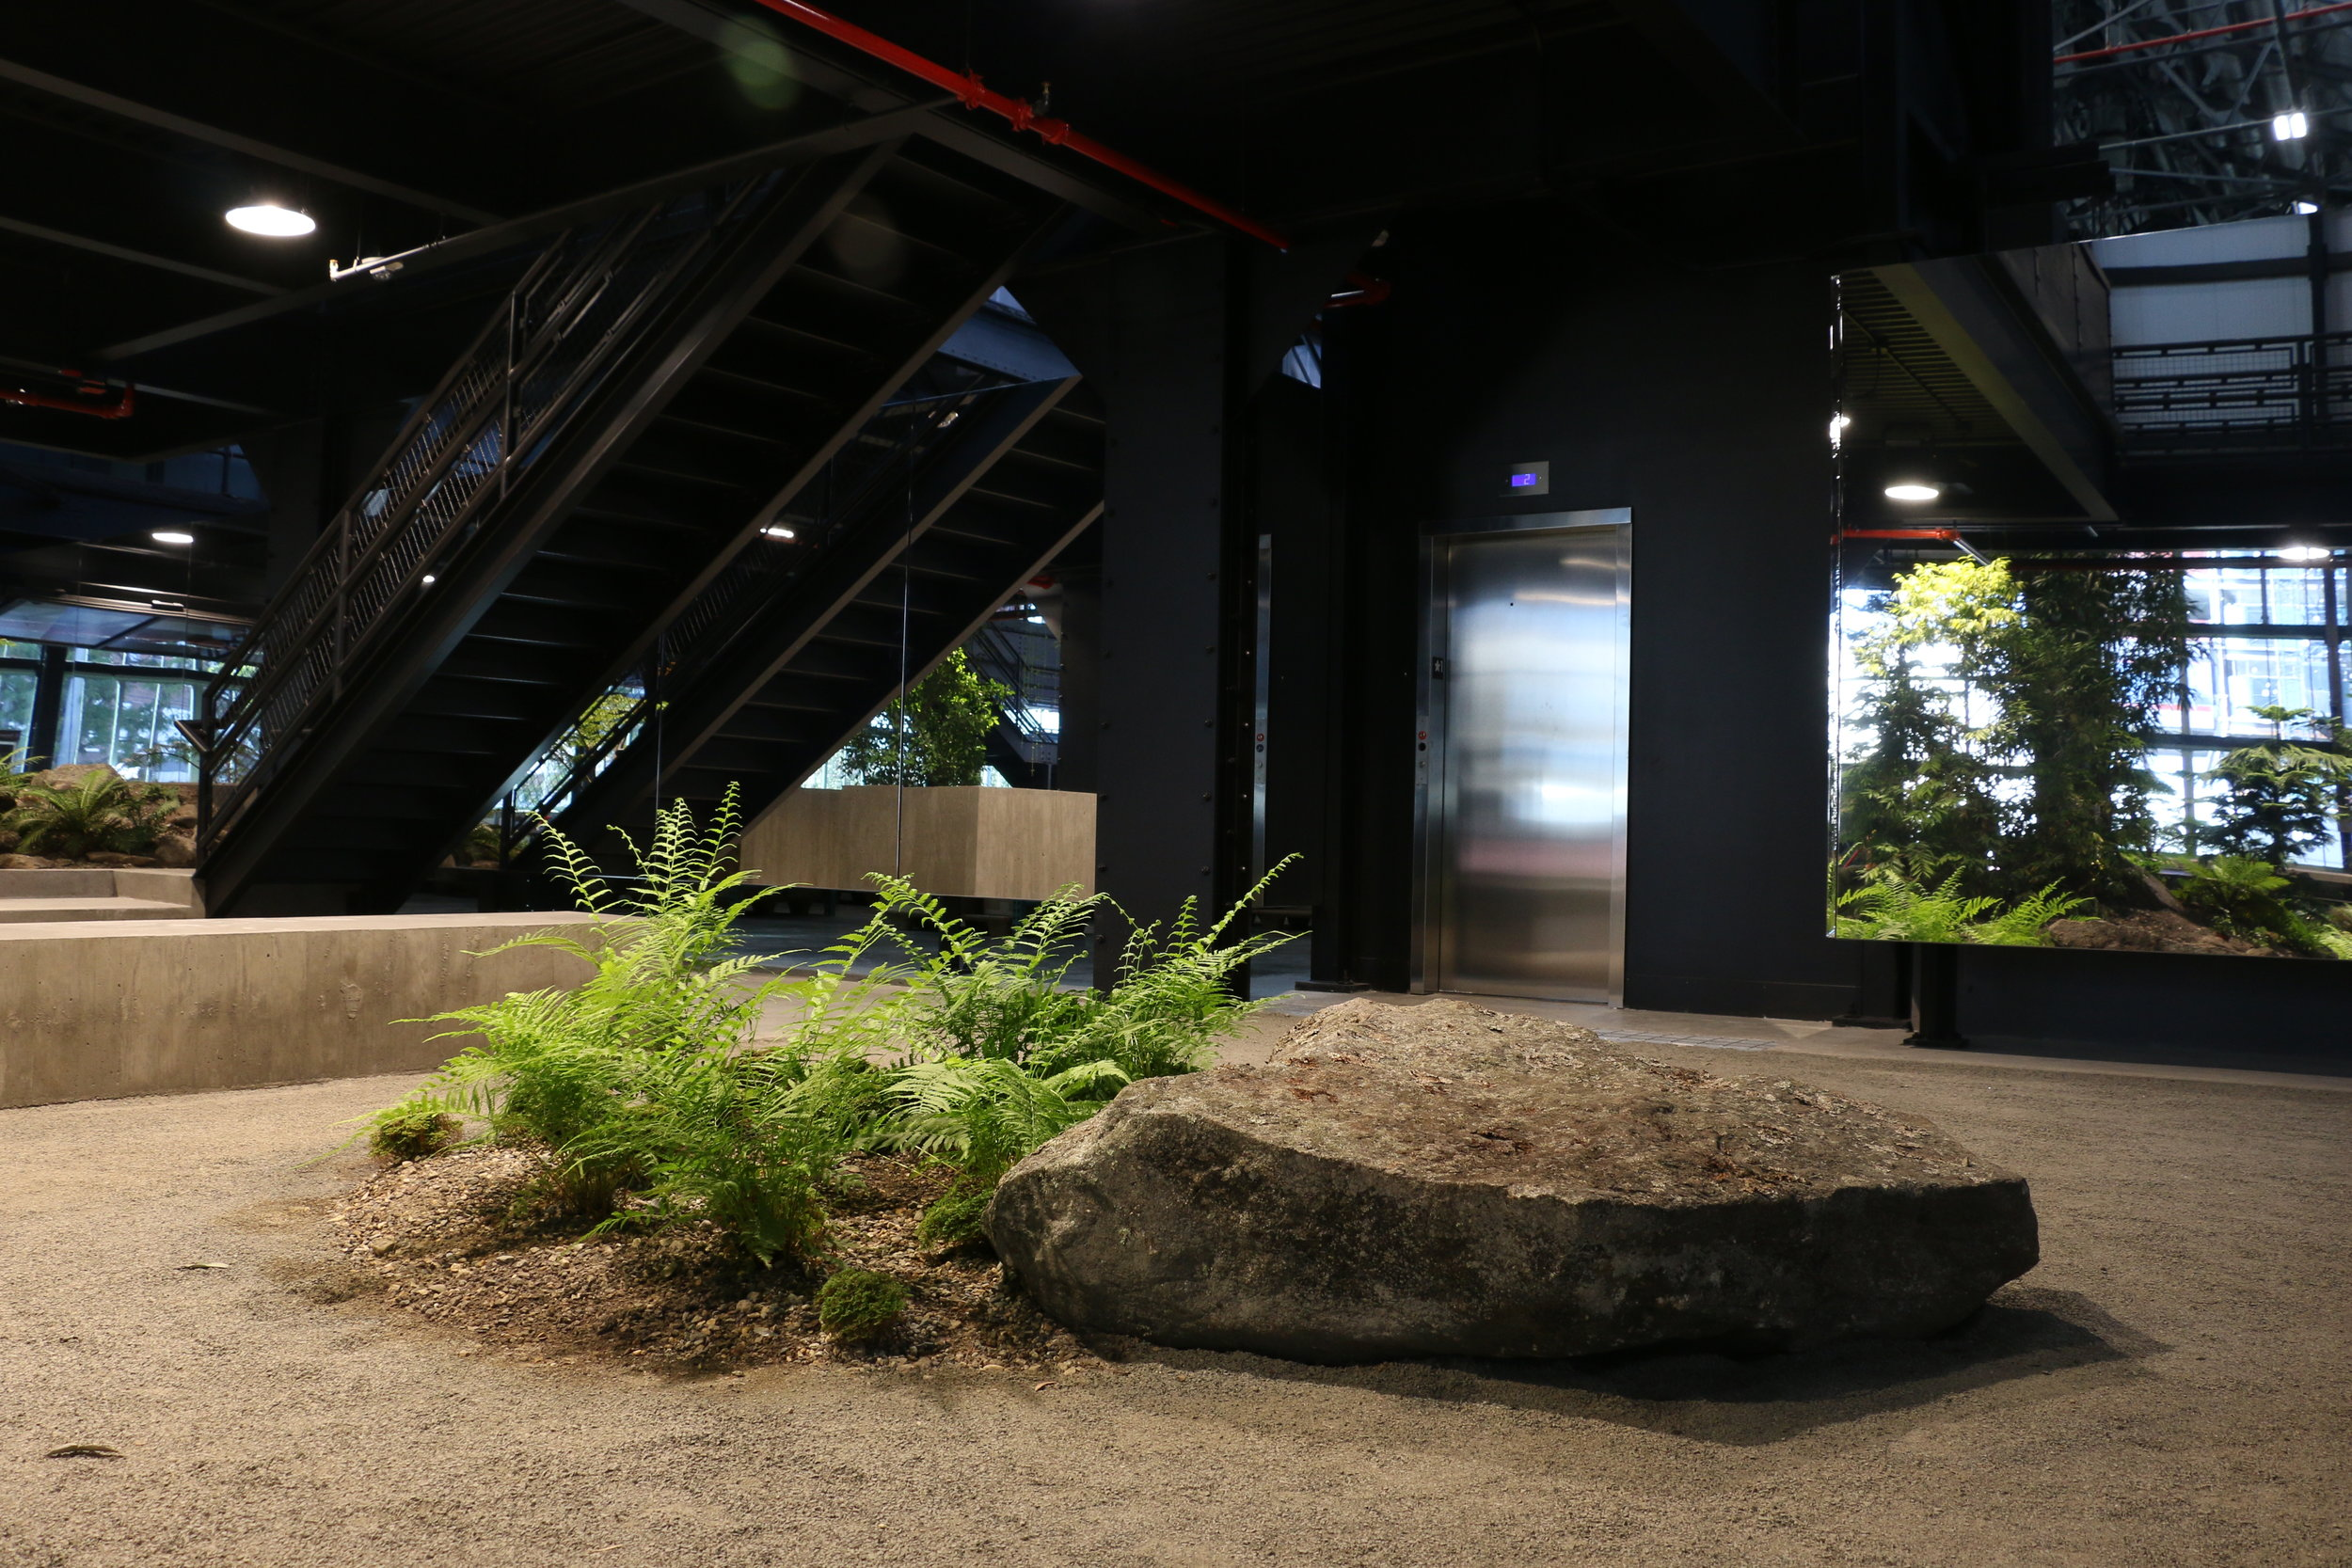 VERDANT,+The+Enclosed+Forest,+Mac+Carbonell+designer,+Contemporary+landscape,+New+York+landscape+design54.JPG